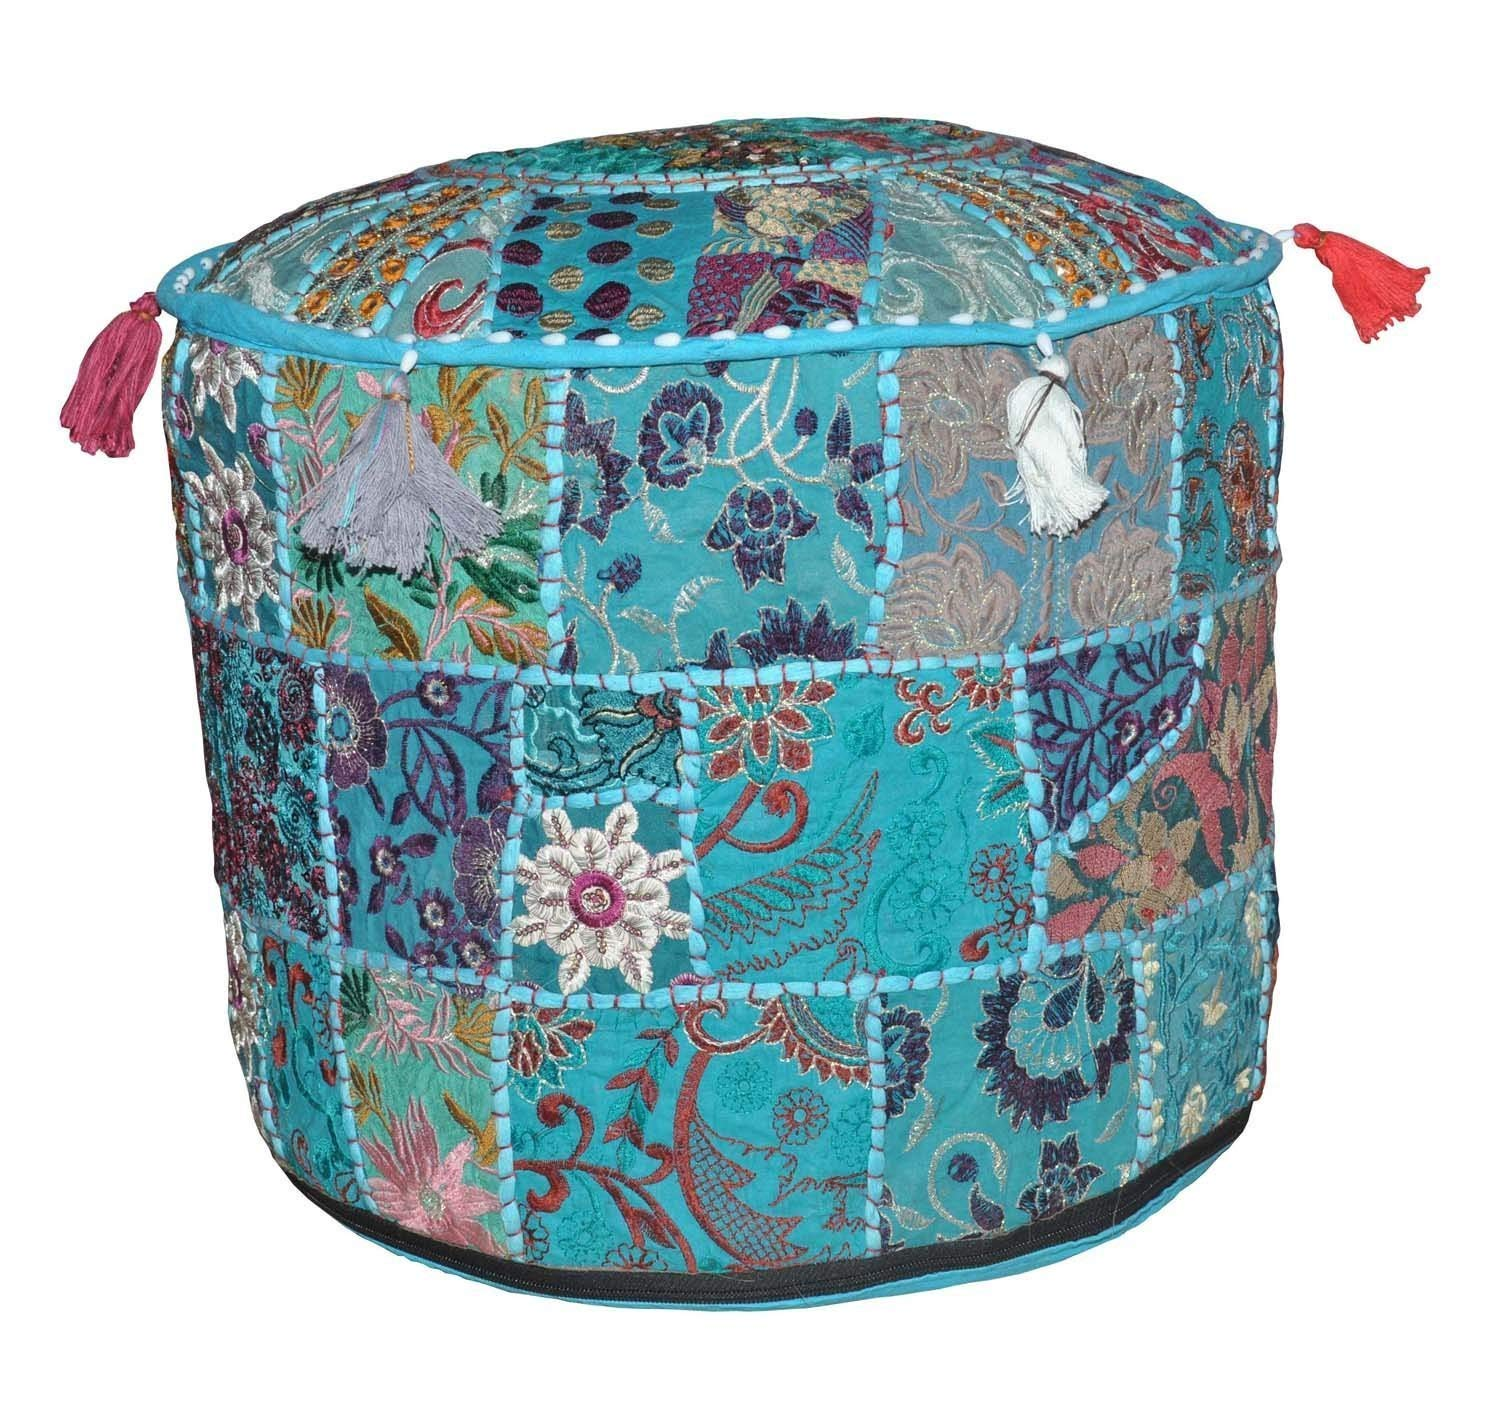 Stylo Culture 40 cm Round Cotton Patchwork Embroidered Pouffe Stool Ottoman Stool Pouf Cover Green Floral Footstool Floor Cushion Cover Ethnic Decor SC-POUF00029